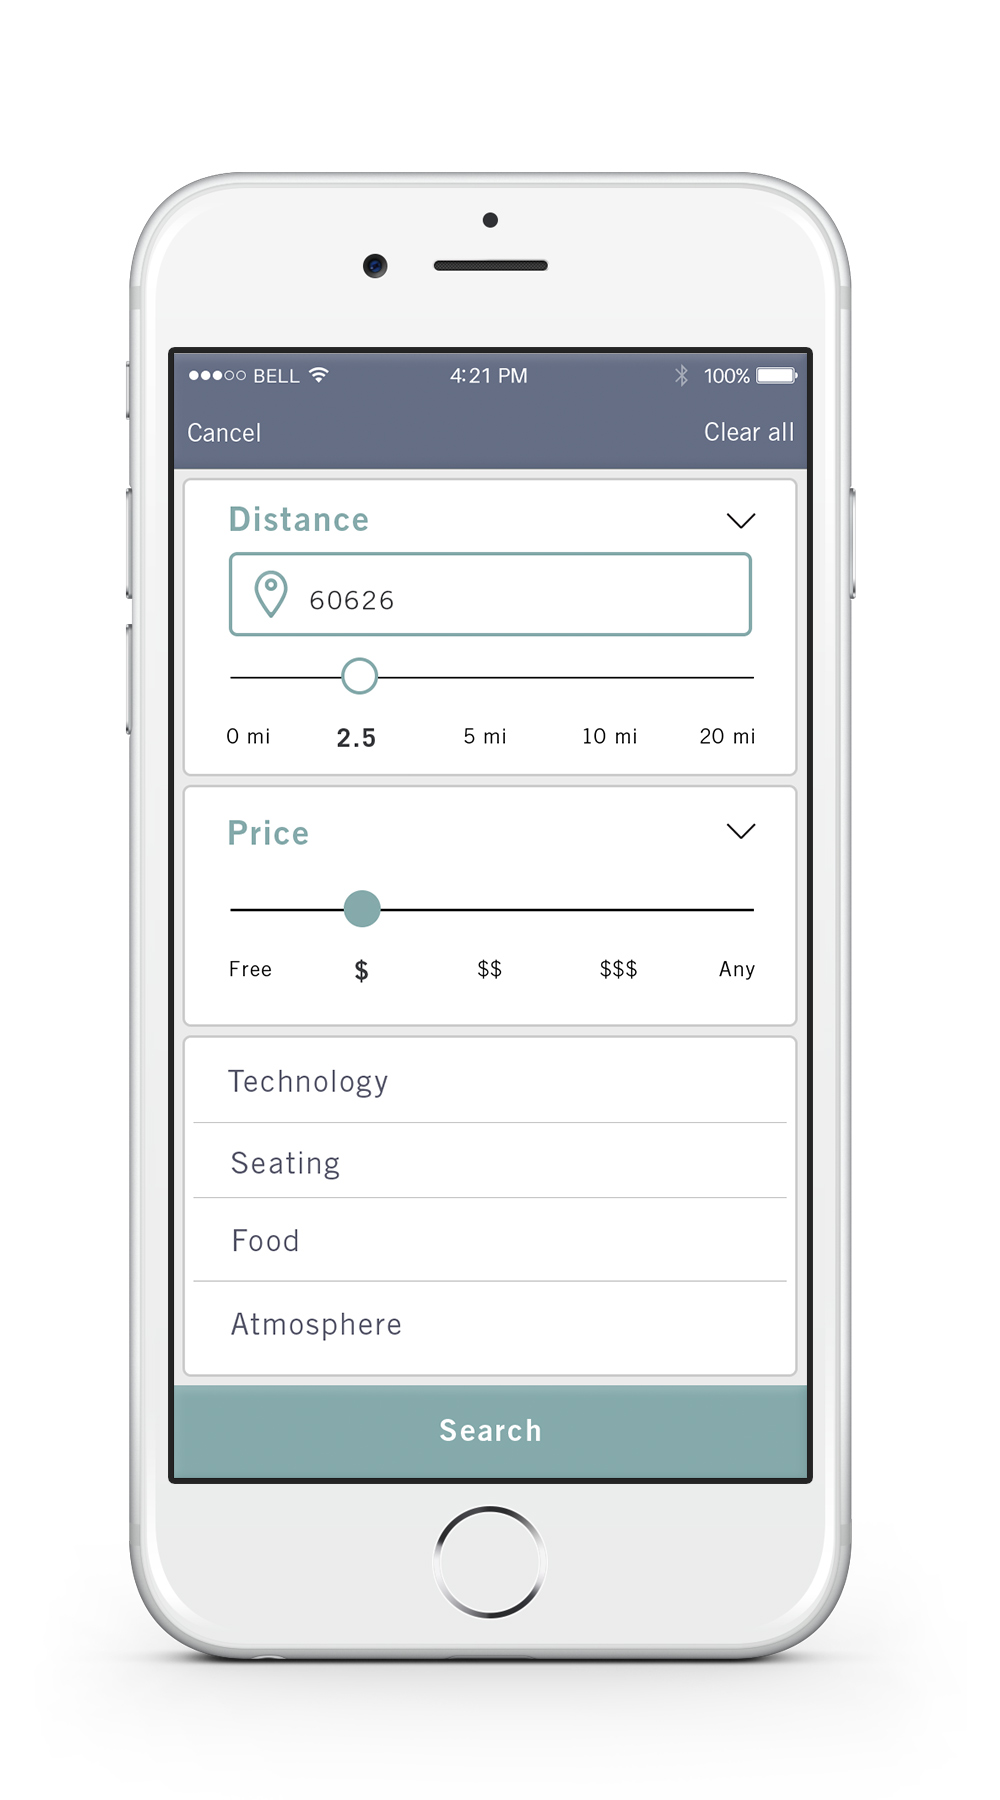 Filter    —   The search tab allows the user to filter the search results based on distance, price, as well as technology, seating, food and atmosphere.